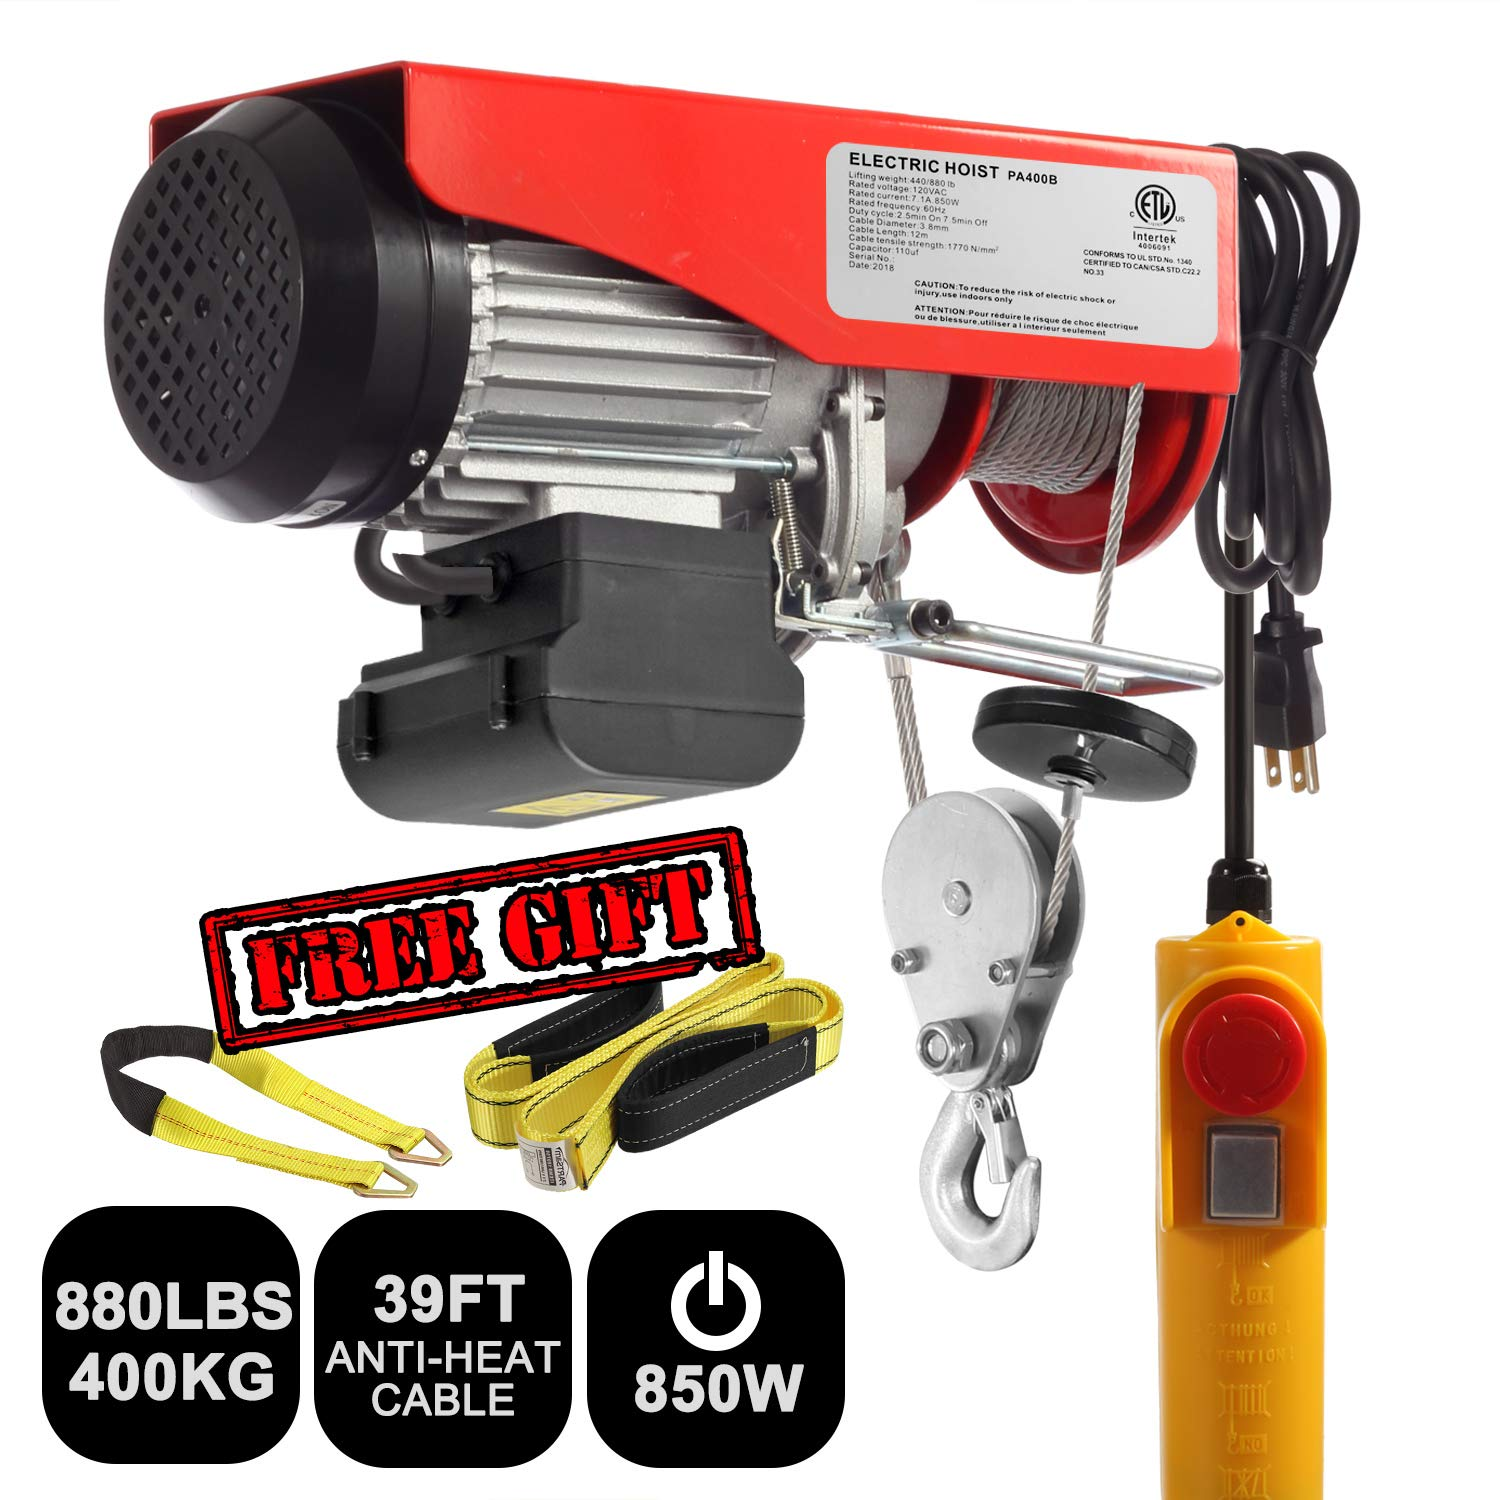 Partsam 880 lbs Lift Electric Hoist Crane Remote Control Power System, on